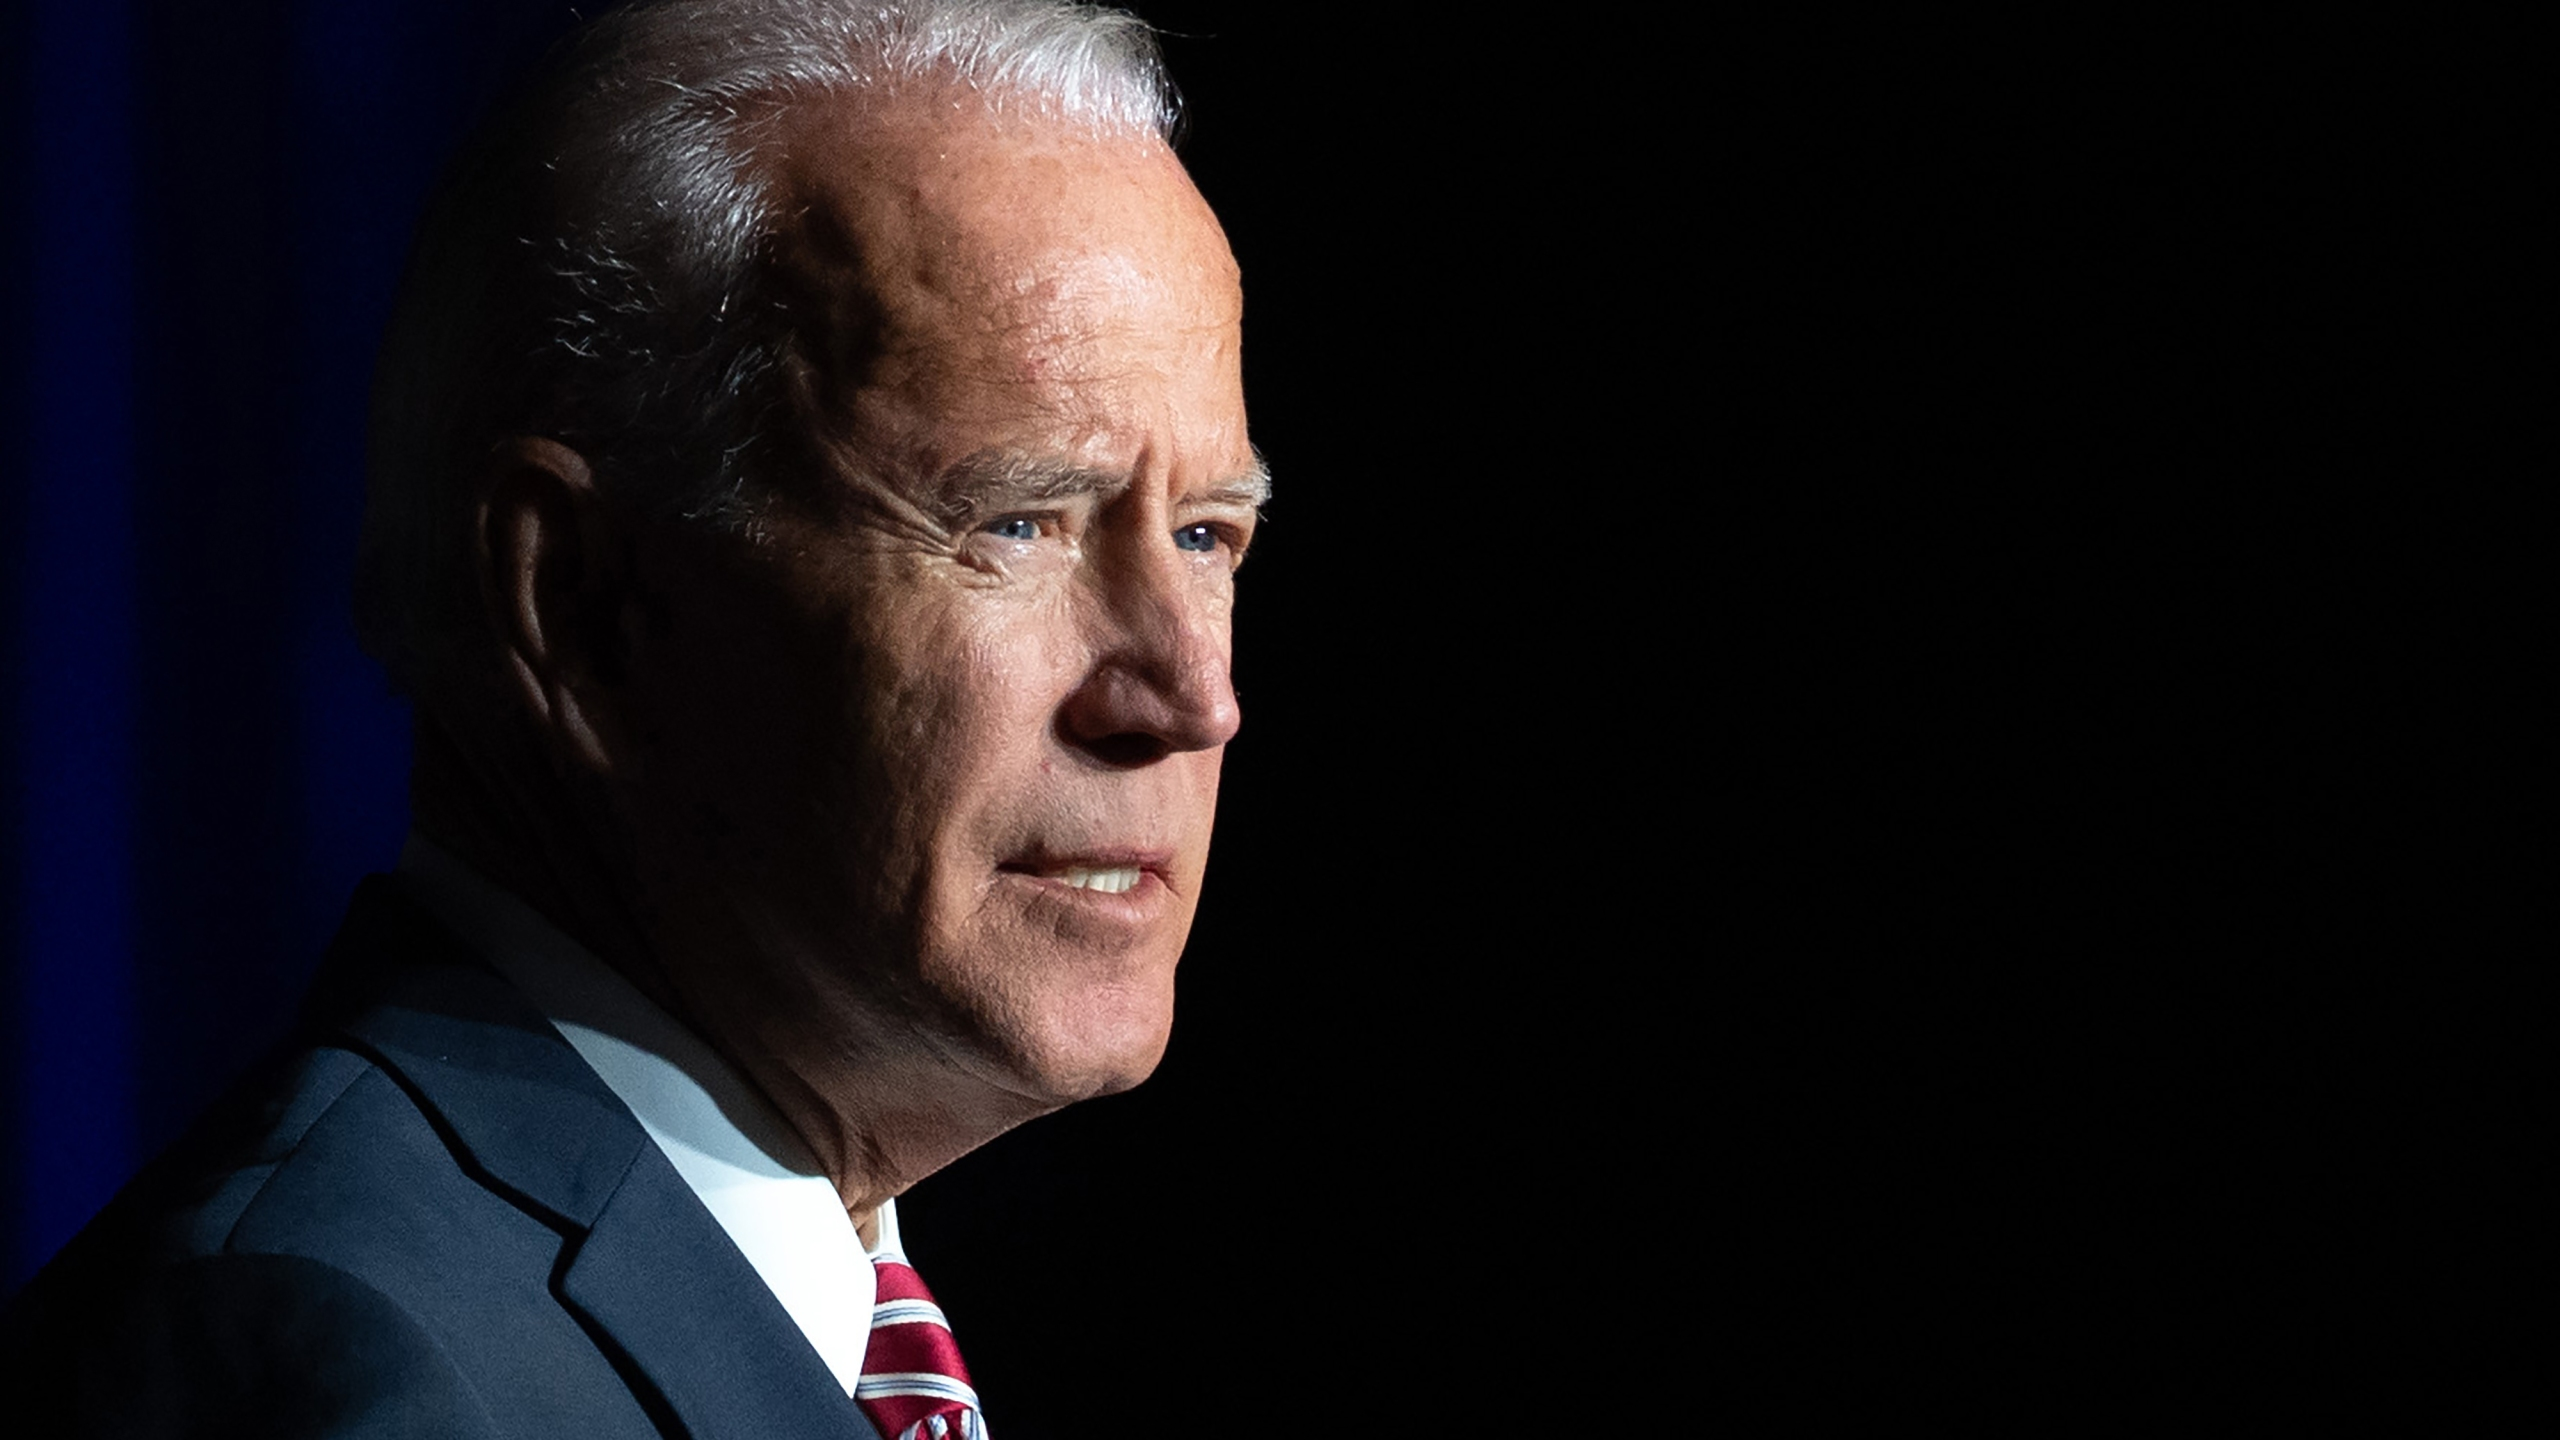 Joe Biden speaks during the First State Democratic Dinner in Dover, Delaware, on March 16, 2019. (credit: Saul Loeb/AFP/Getty Images)